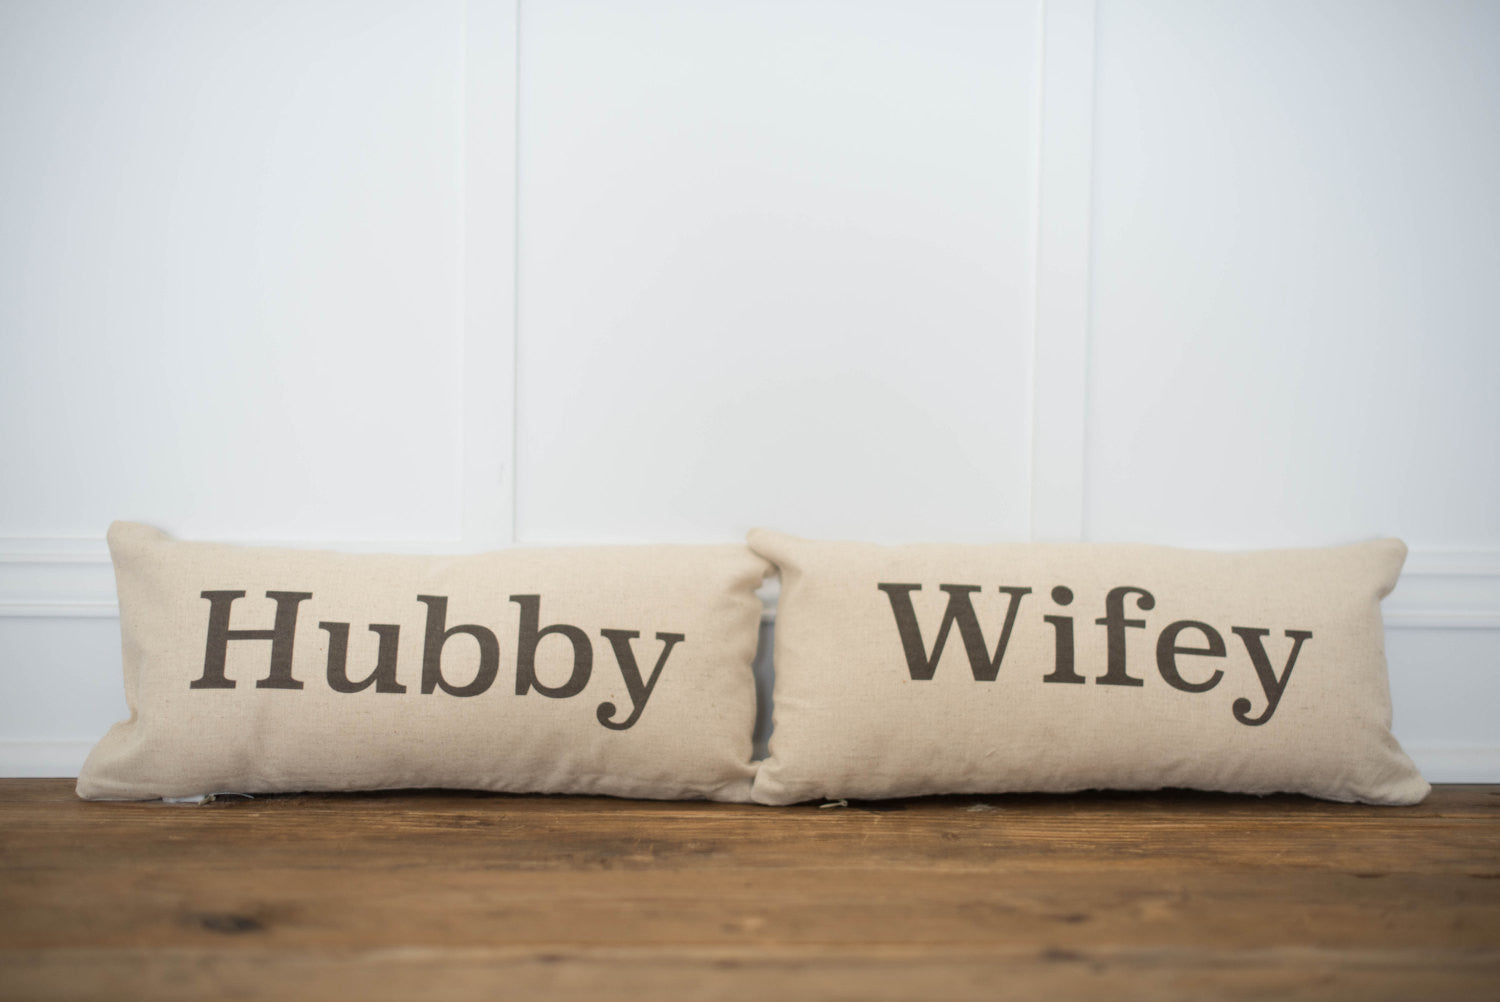 Hubby & Wifey Pillow Covers (set of 2) - Linen and Ivory